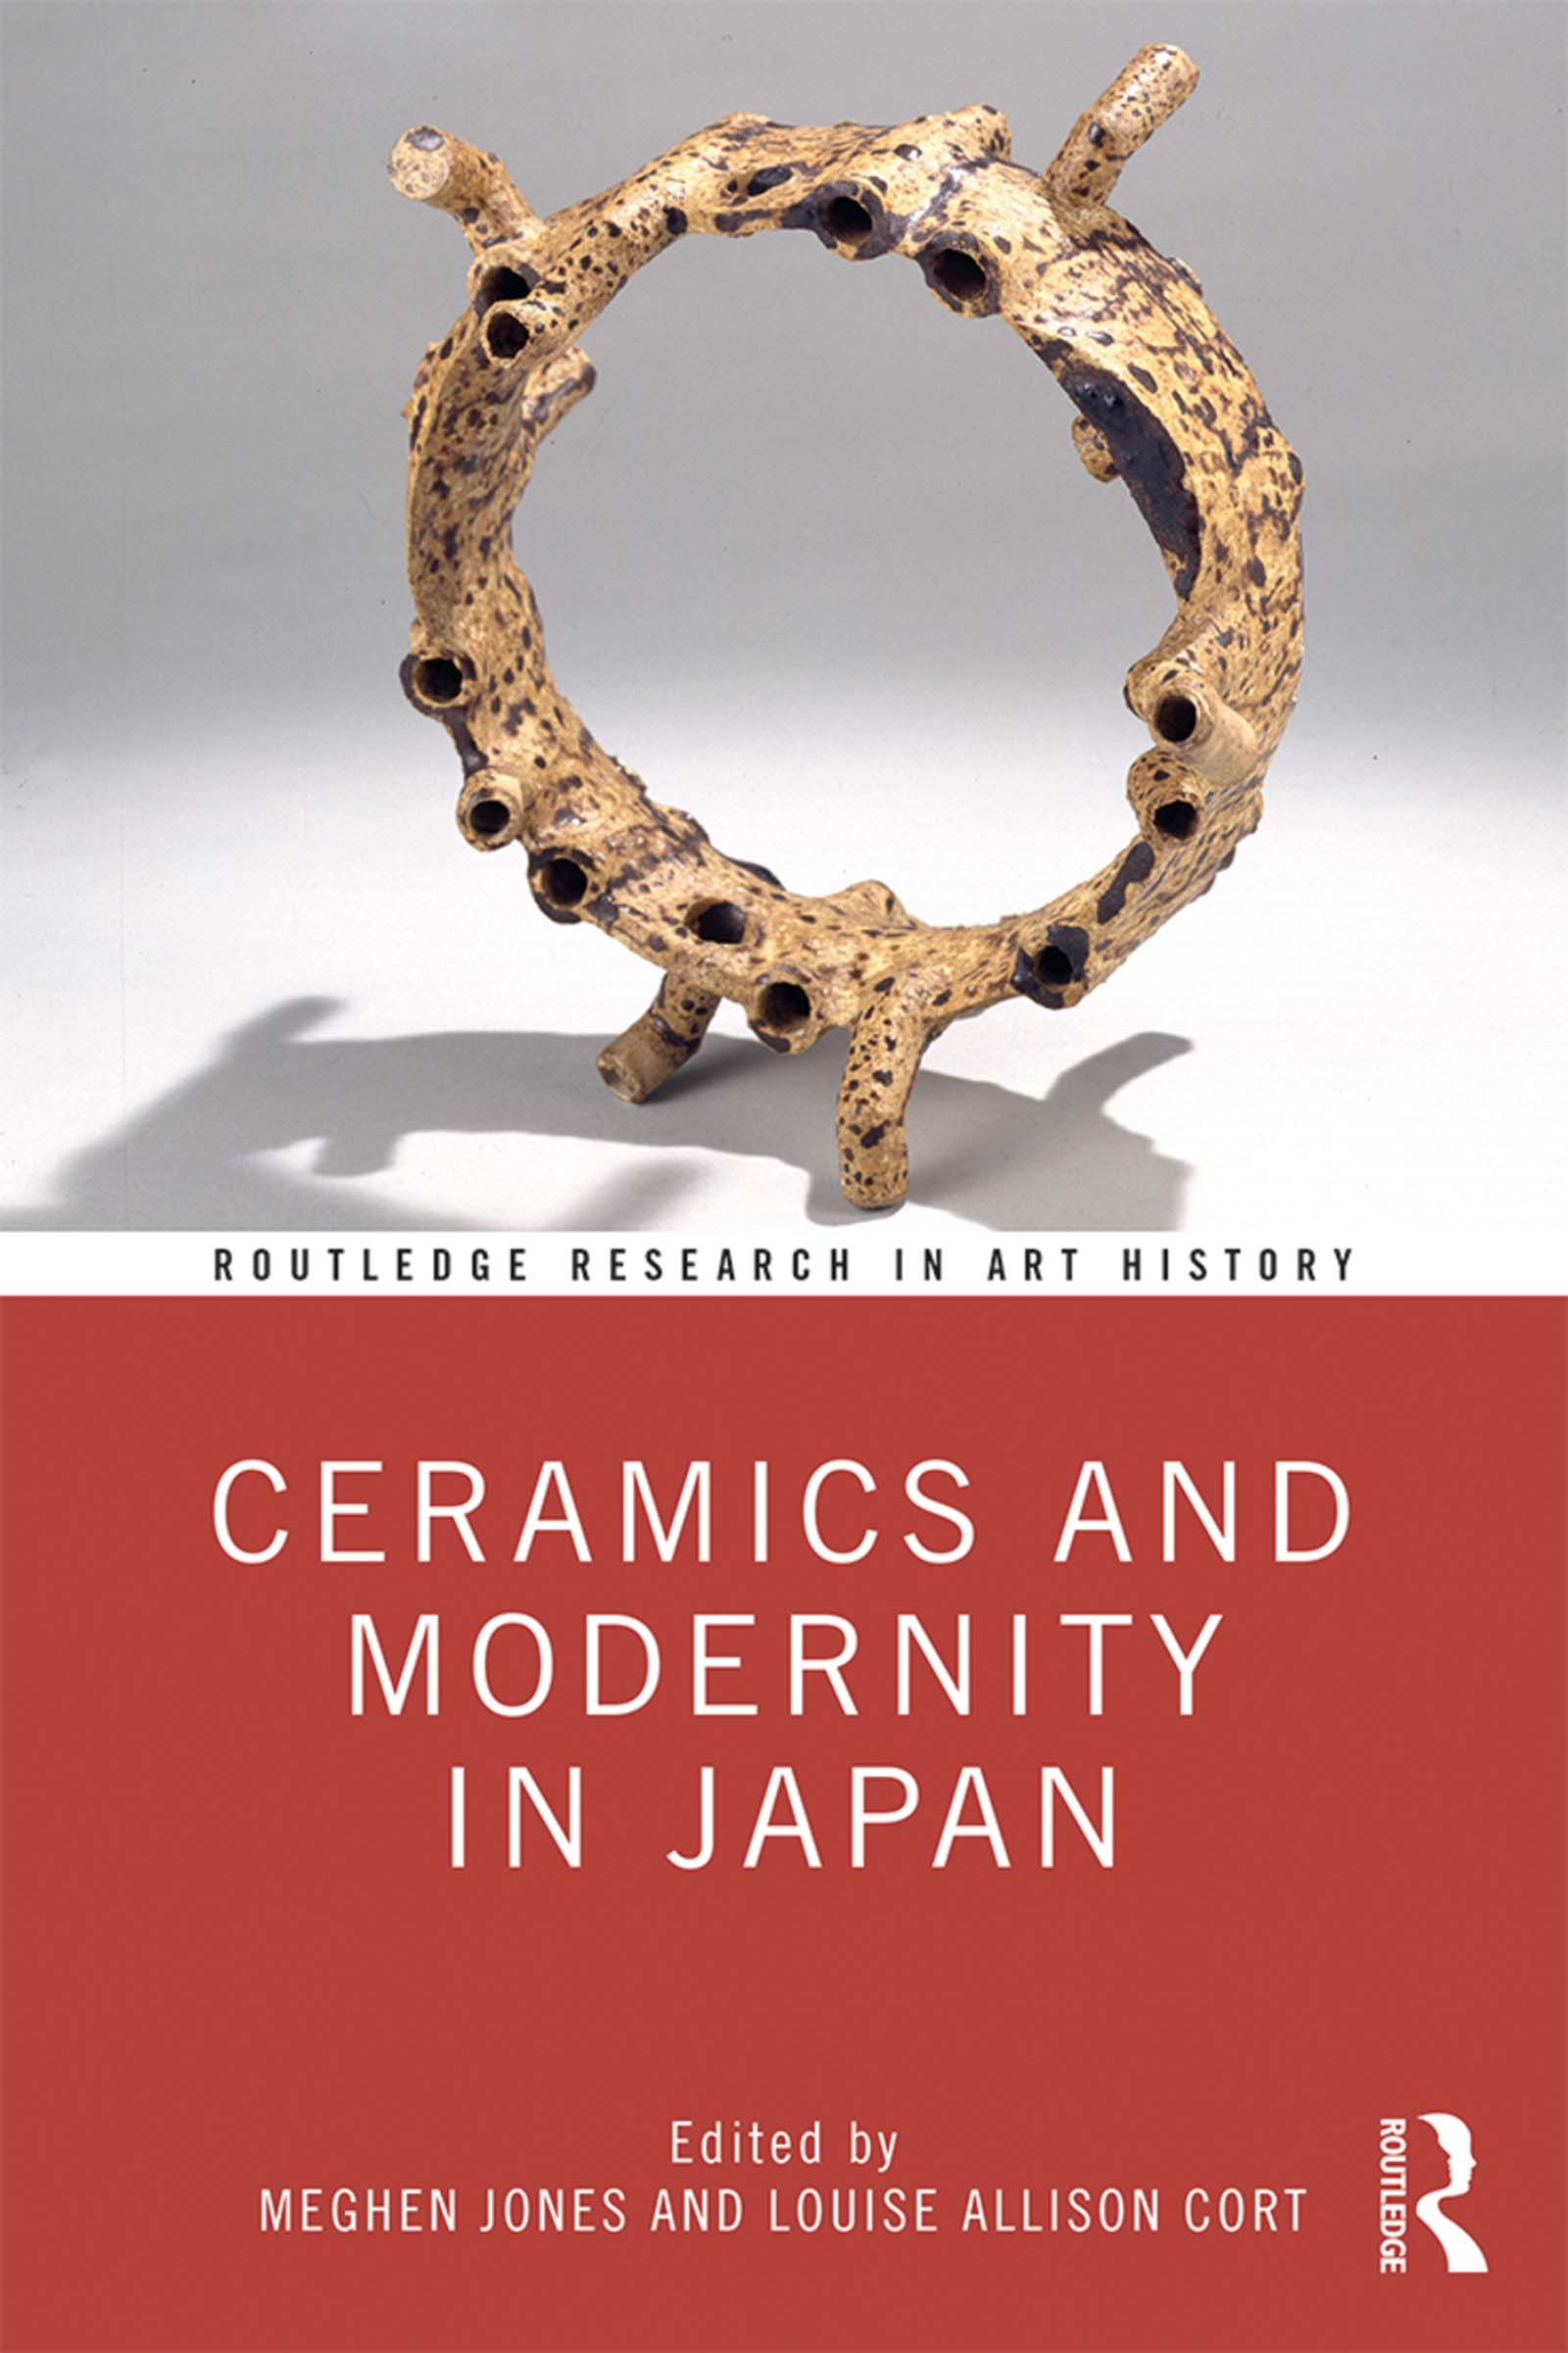 Ceramics and Modernity in Japan book cover